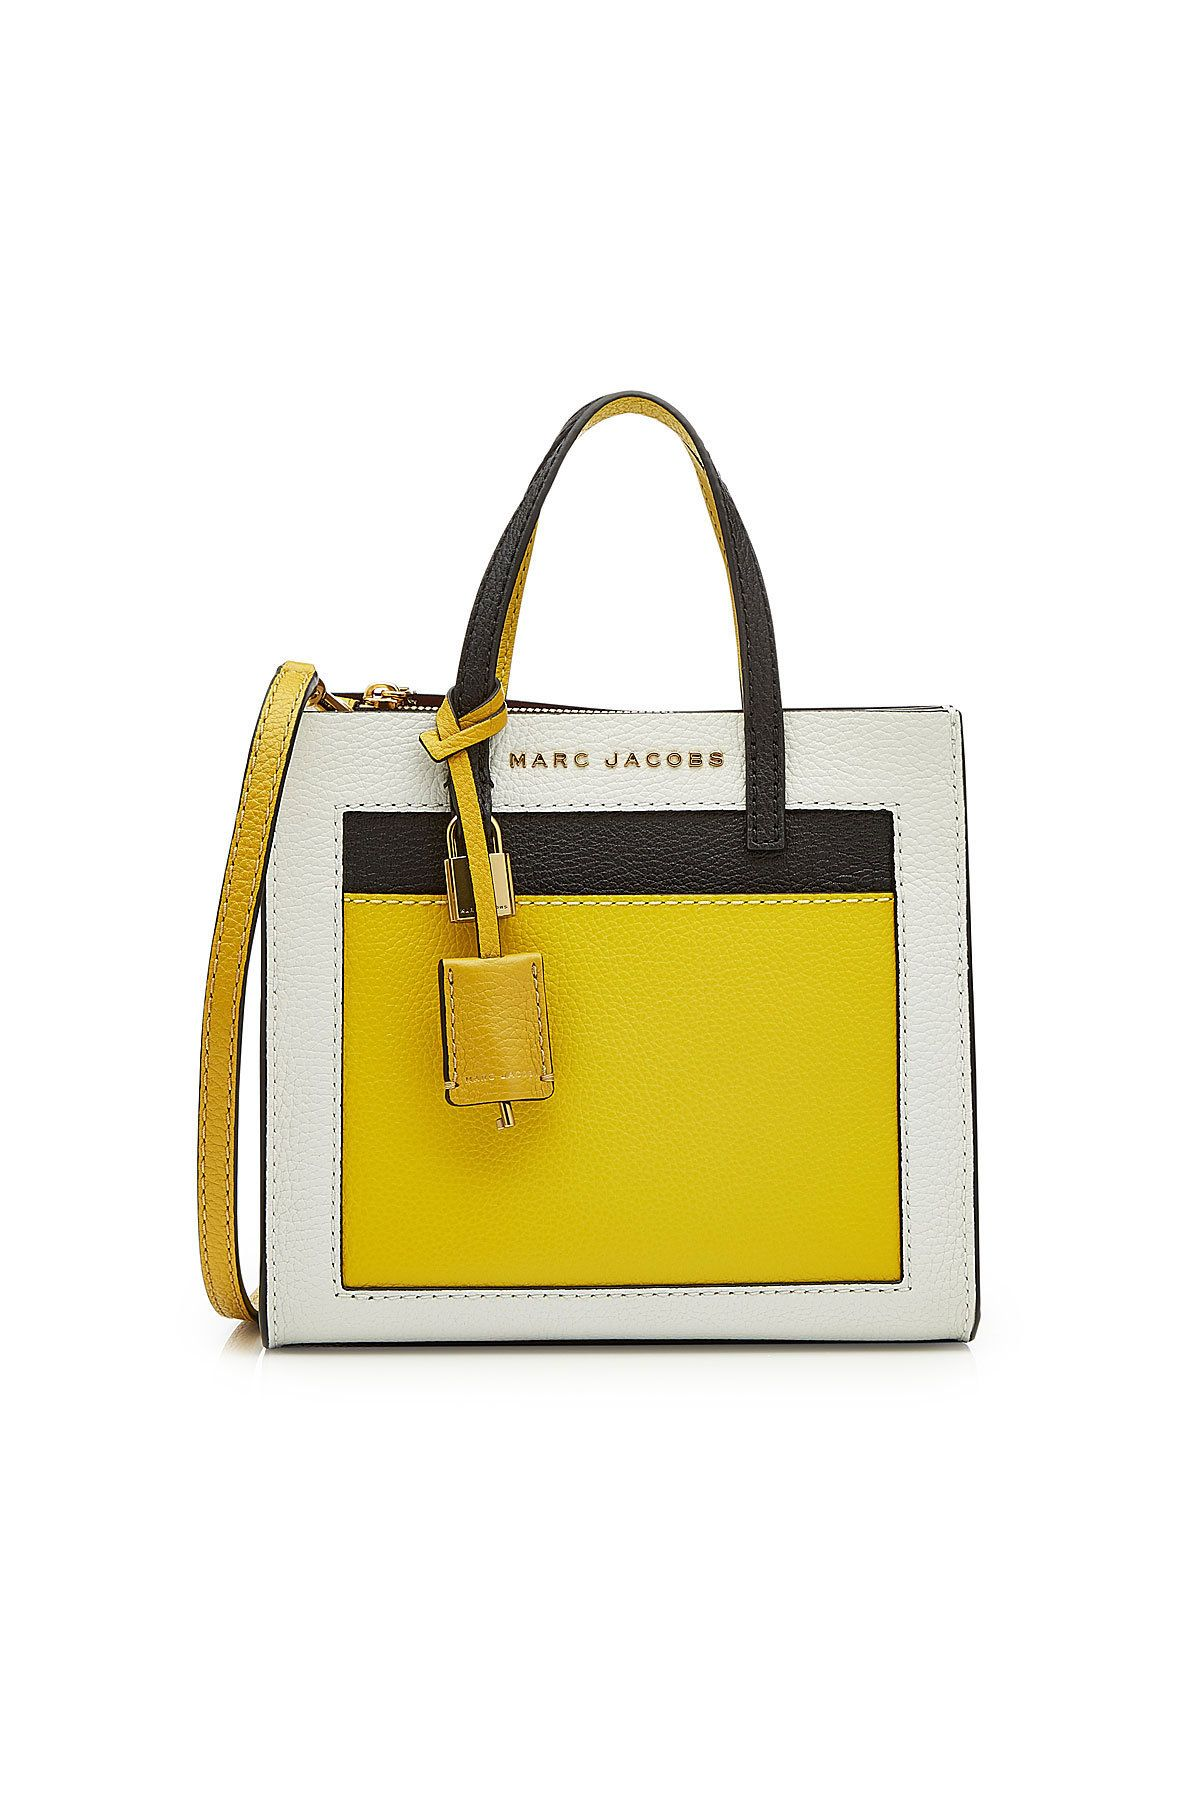 8e86d446b496 MARC JACOBS MINI GRIND LEATHER TOTE.  marcjacobs  bags  leather  hand bags   tote